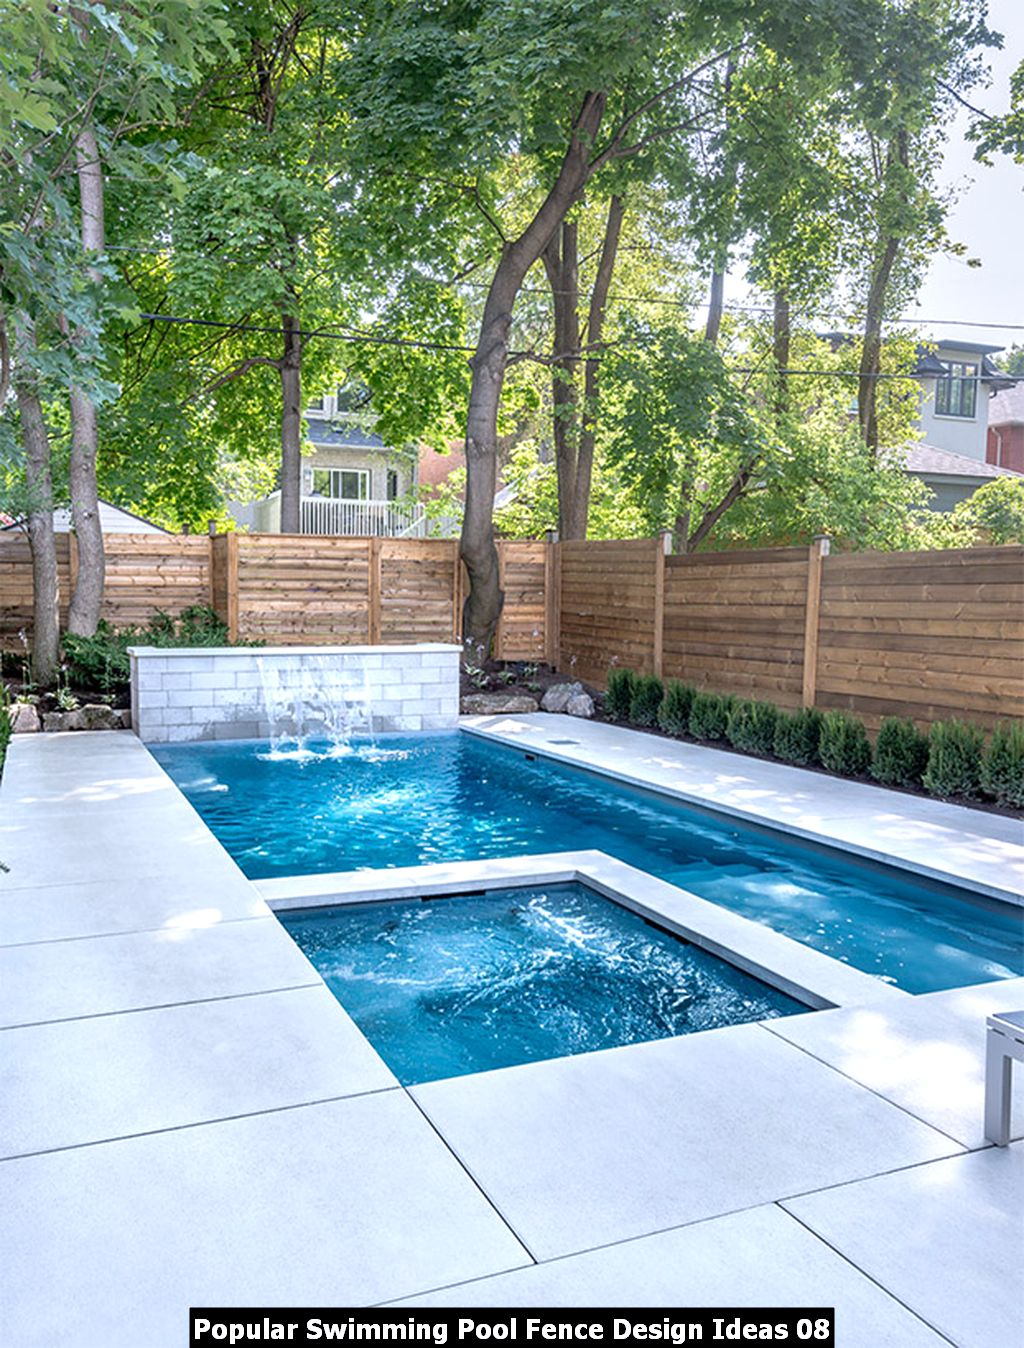 Popular Swimming Pool Fence Design Ideas 08